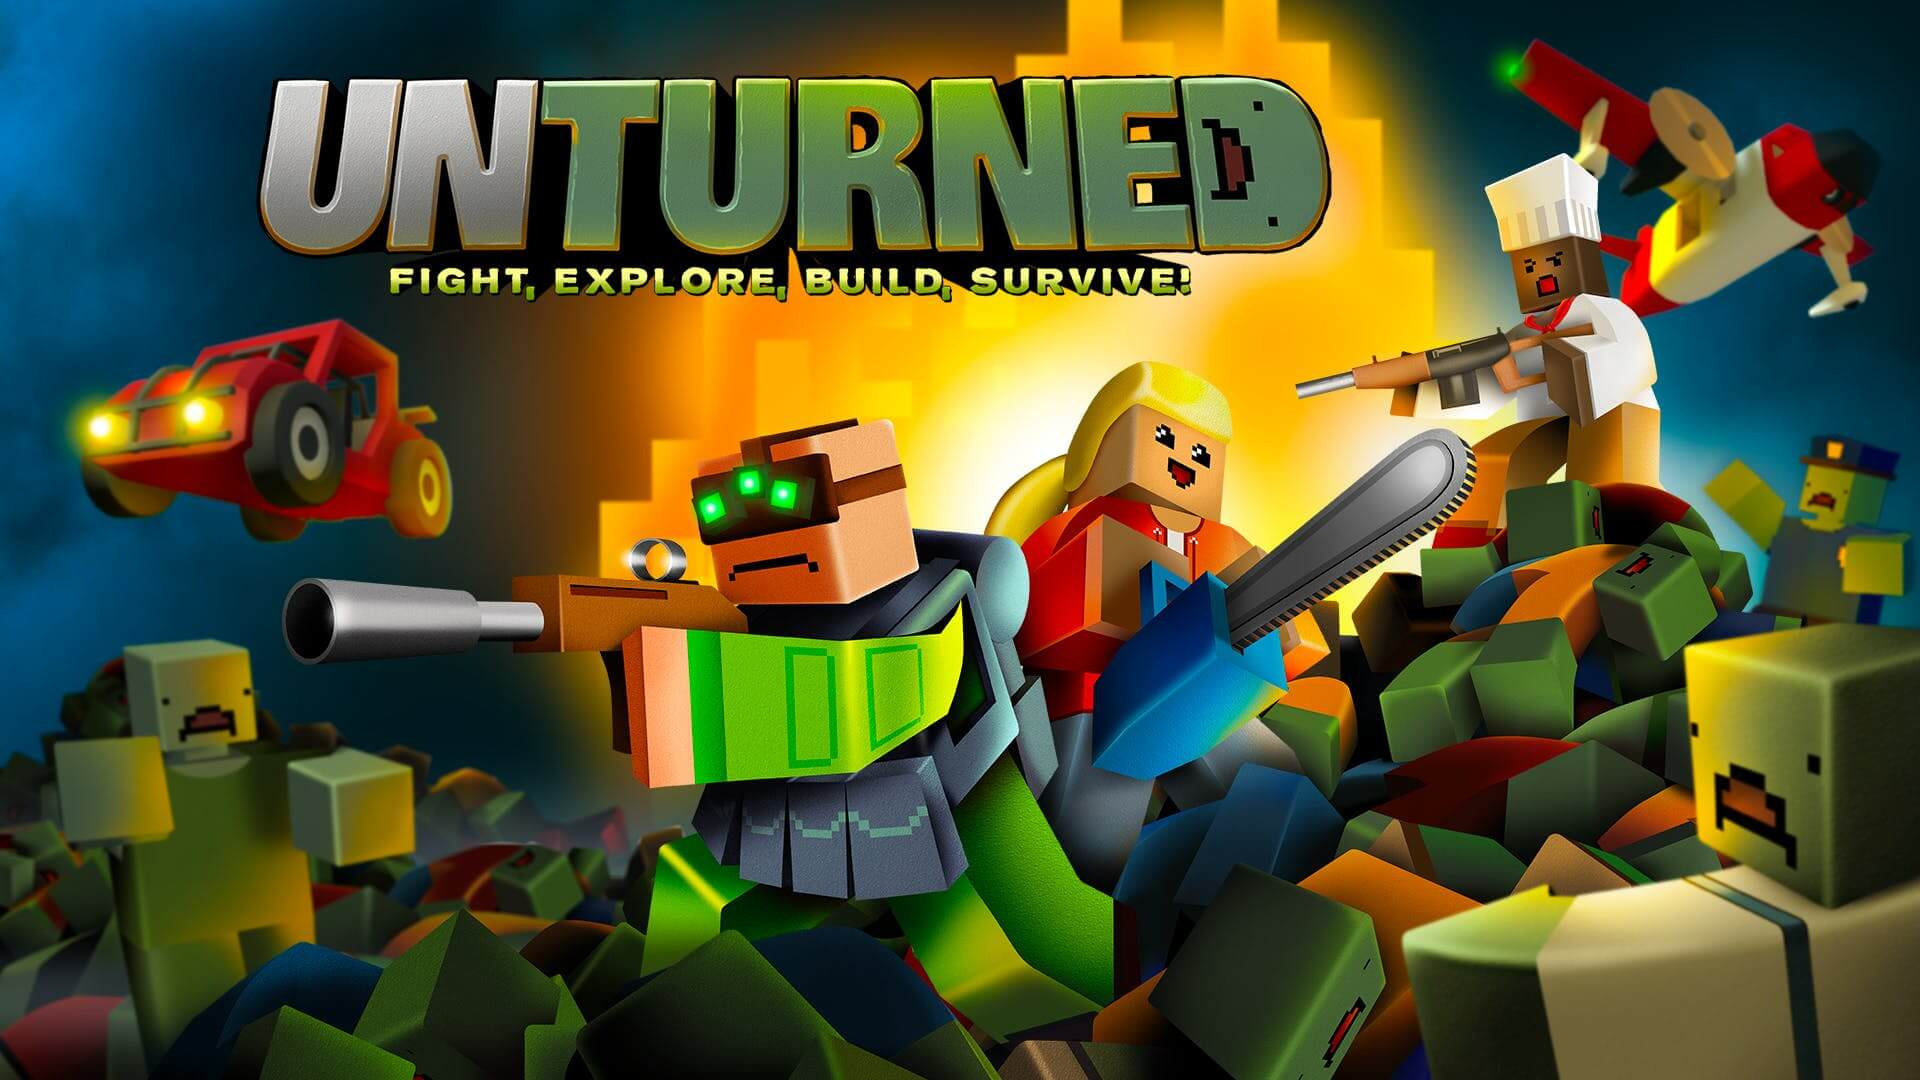 Unturned Releases on PS4 and Xbox One Today